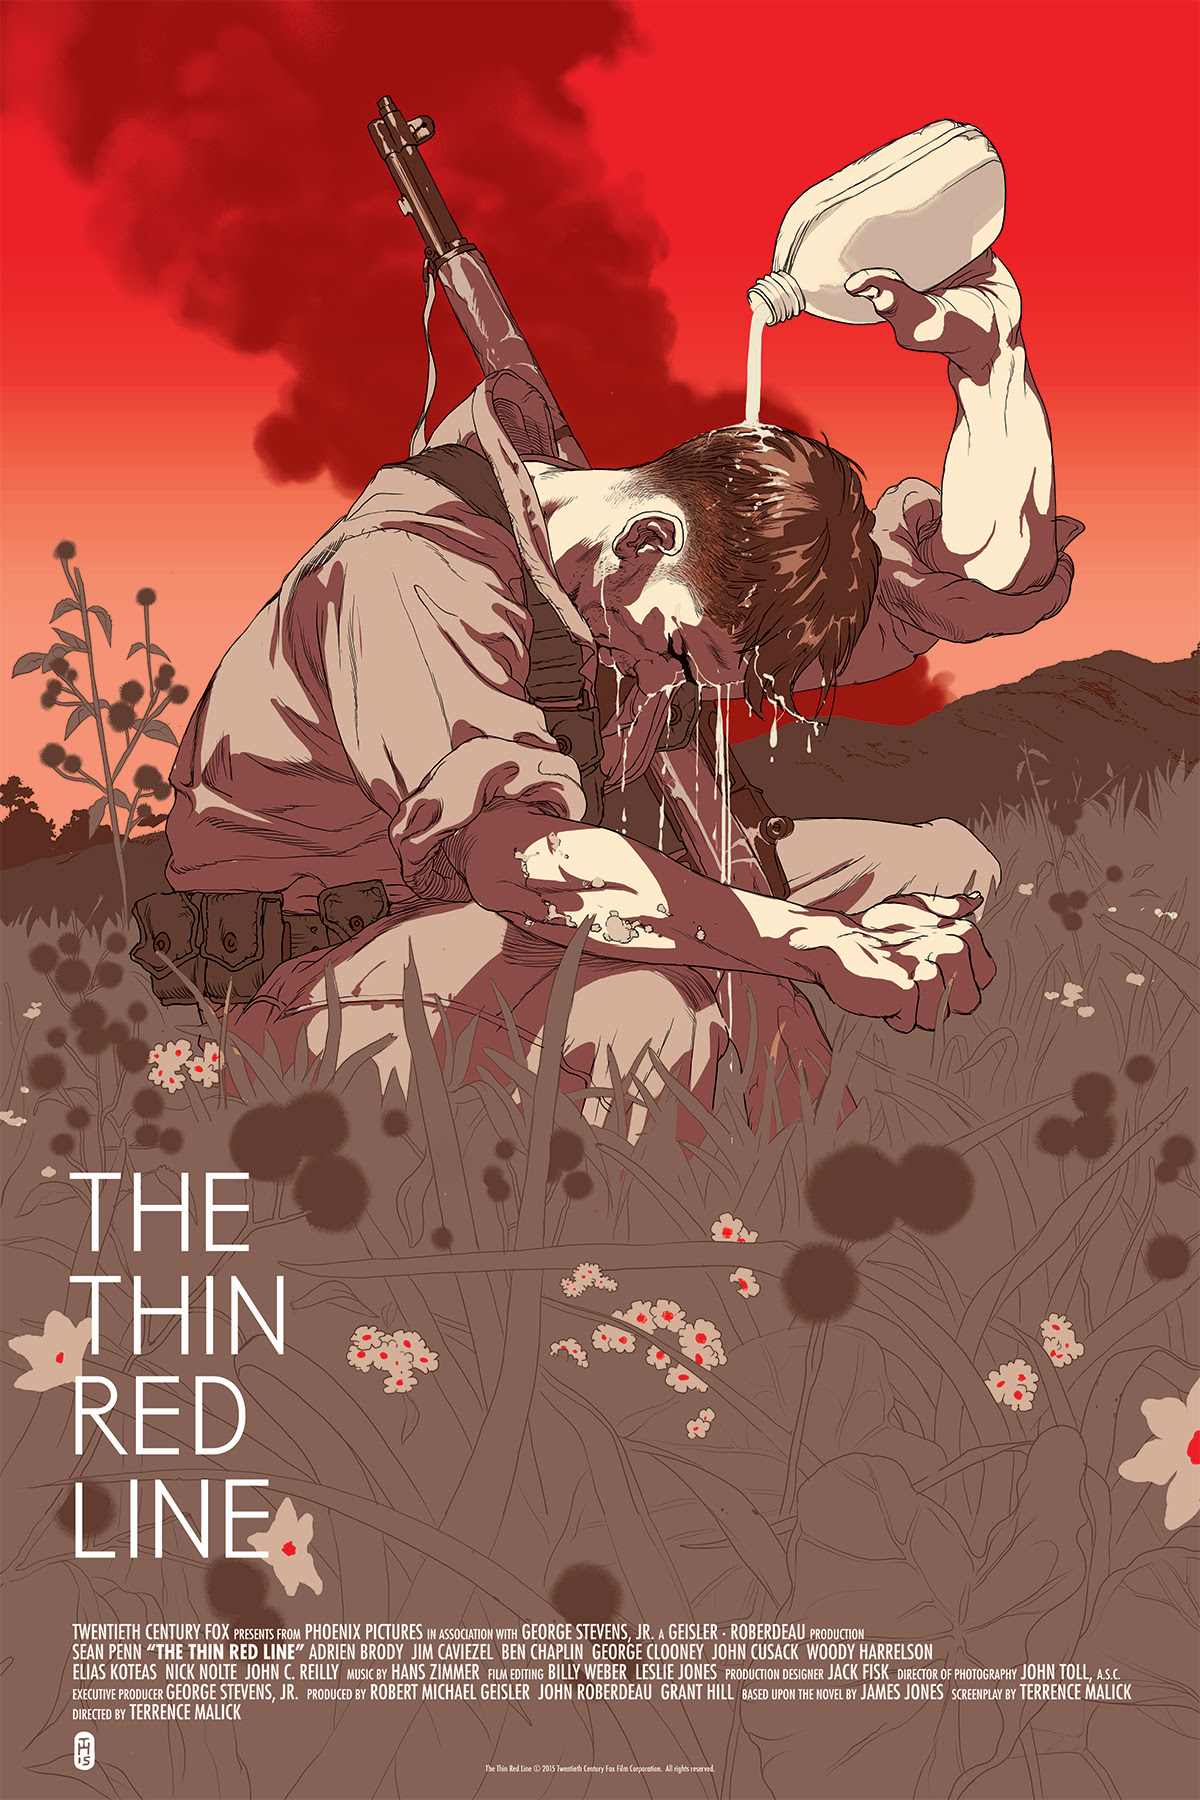 "The Thin Red Line (Variant) by Tomer Hanuka. 24""x36"" screen print. Hand numbered. Edition of 150. Printed by D&L Screenprinting. $65"